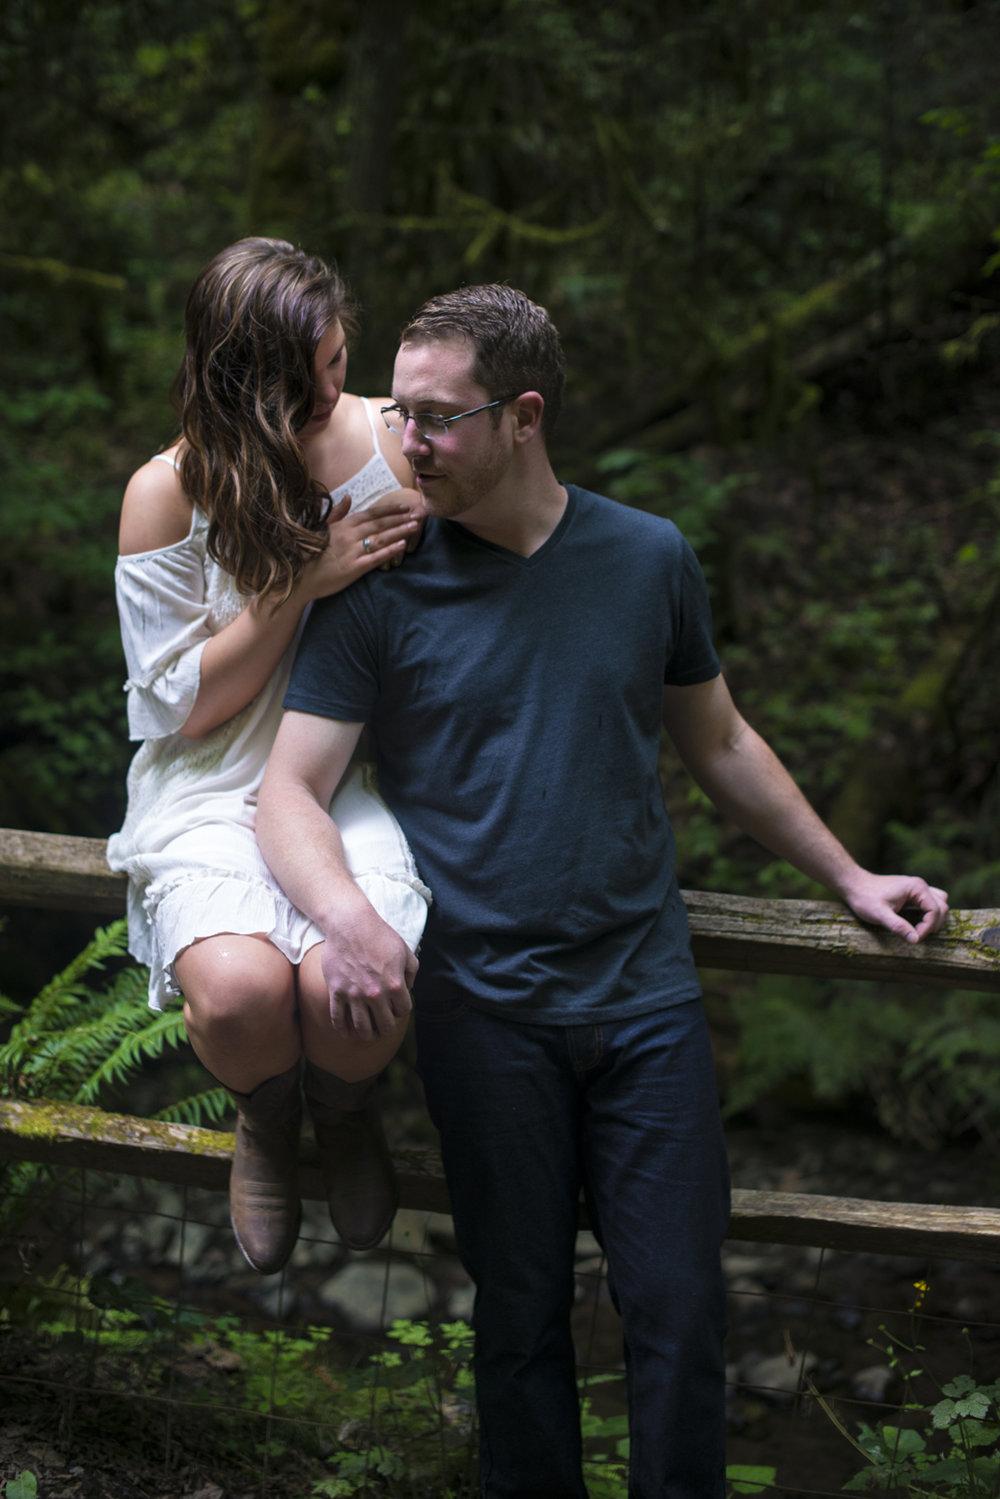 Woods Engagement (7 of 11).jpg